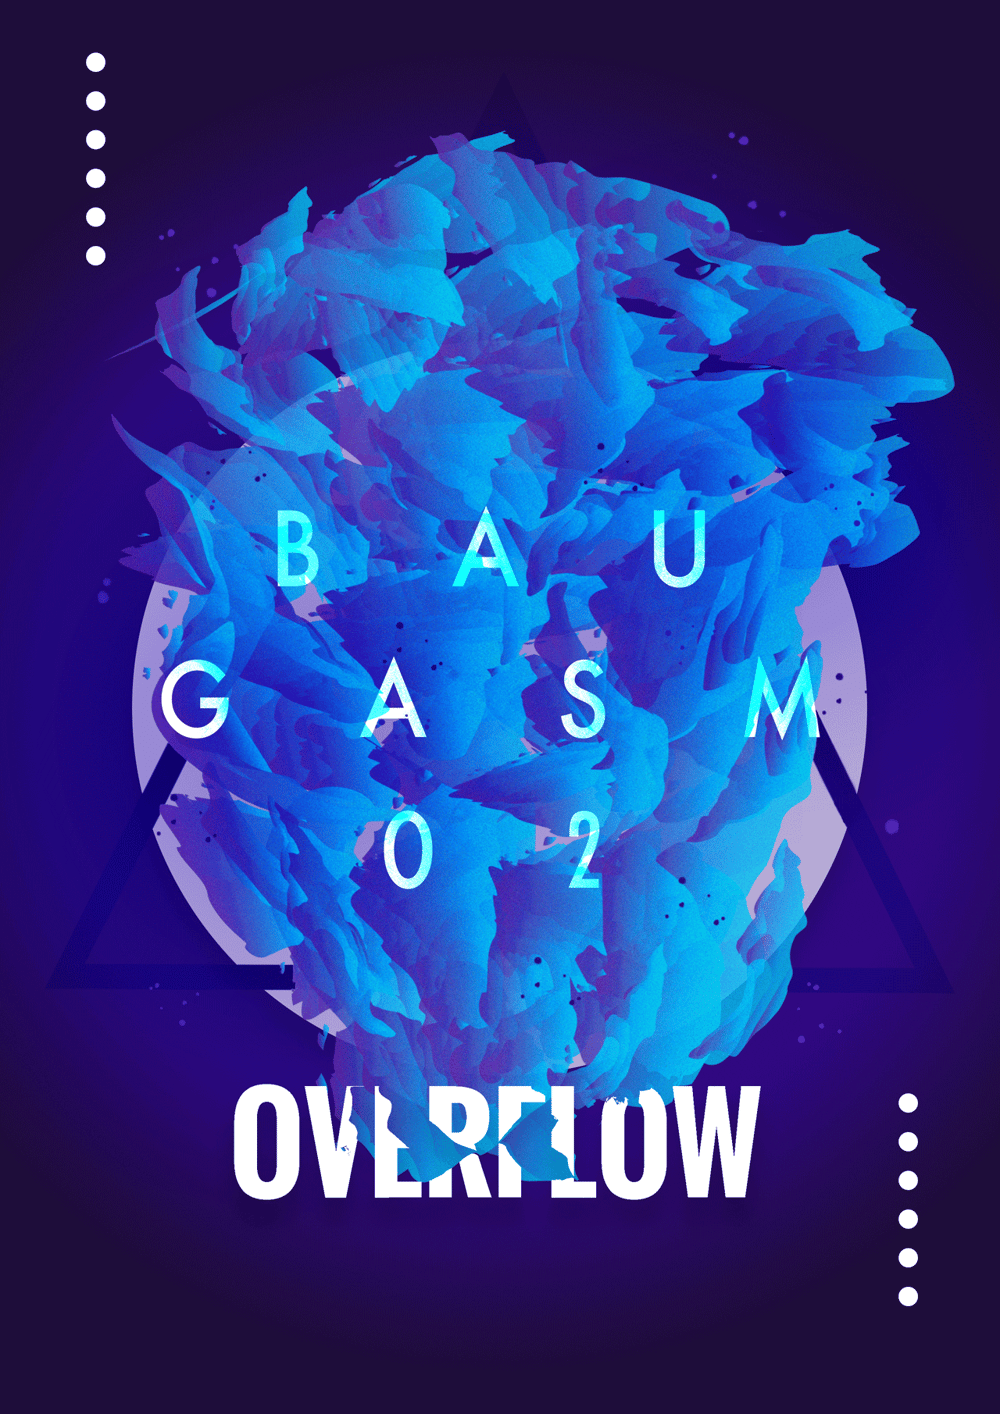 OVERFLOW - image 1 - student project